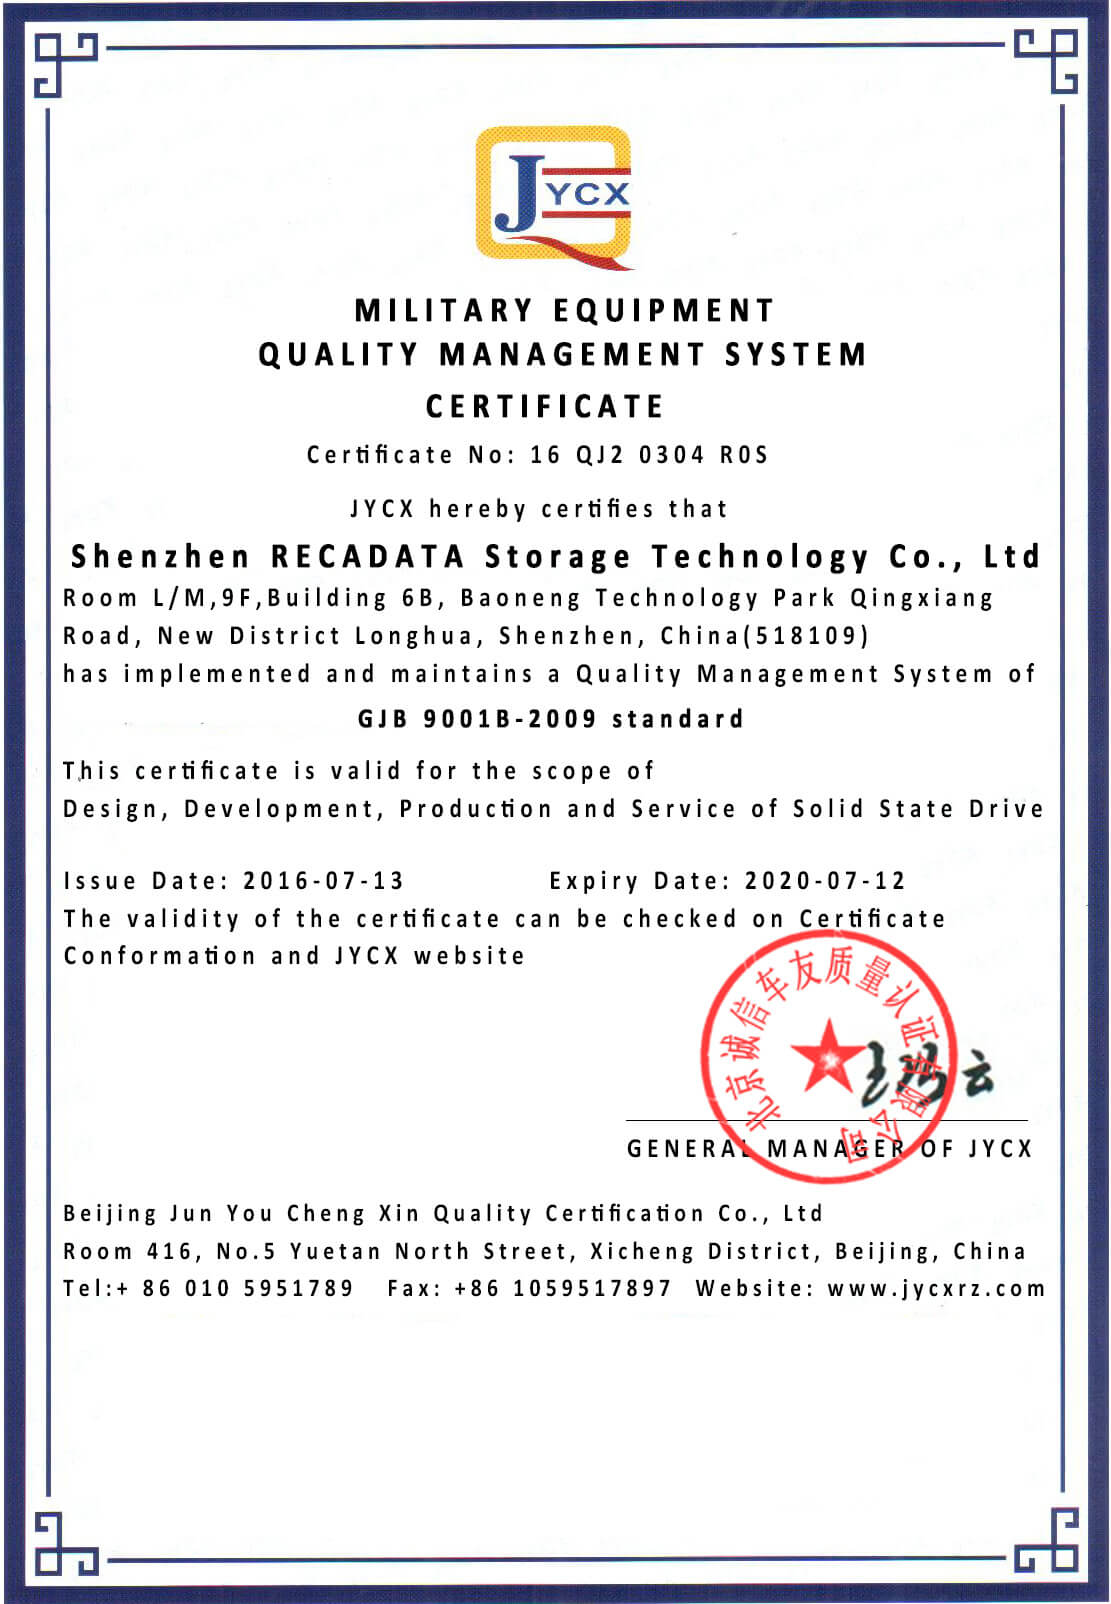 military-equipment-quality-management-system-certificate2-1